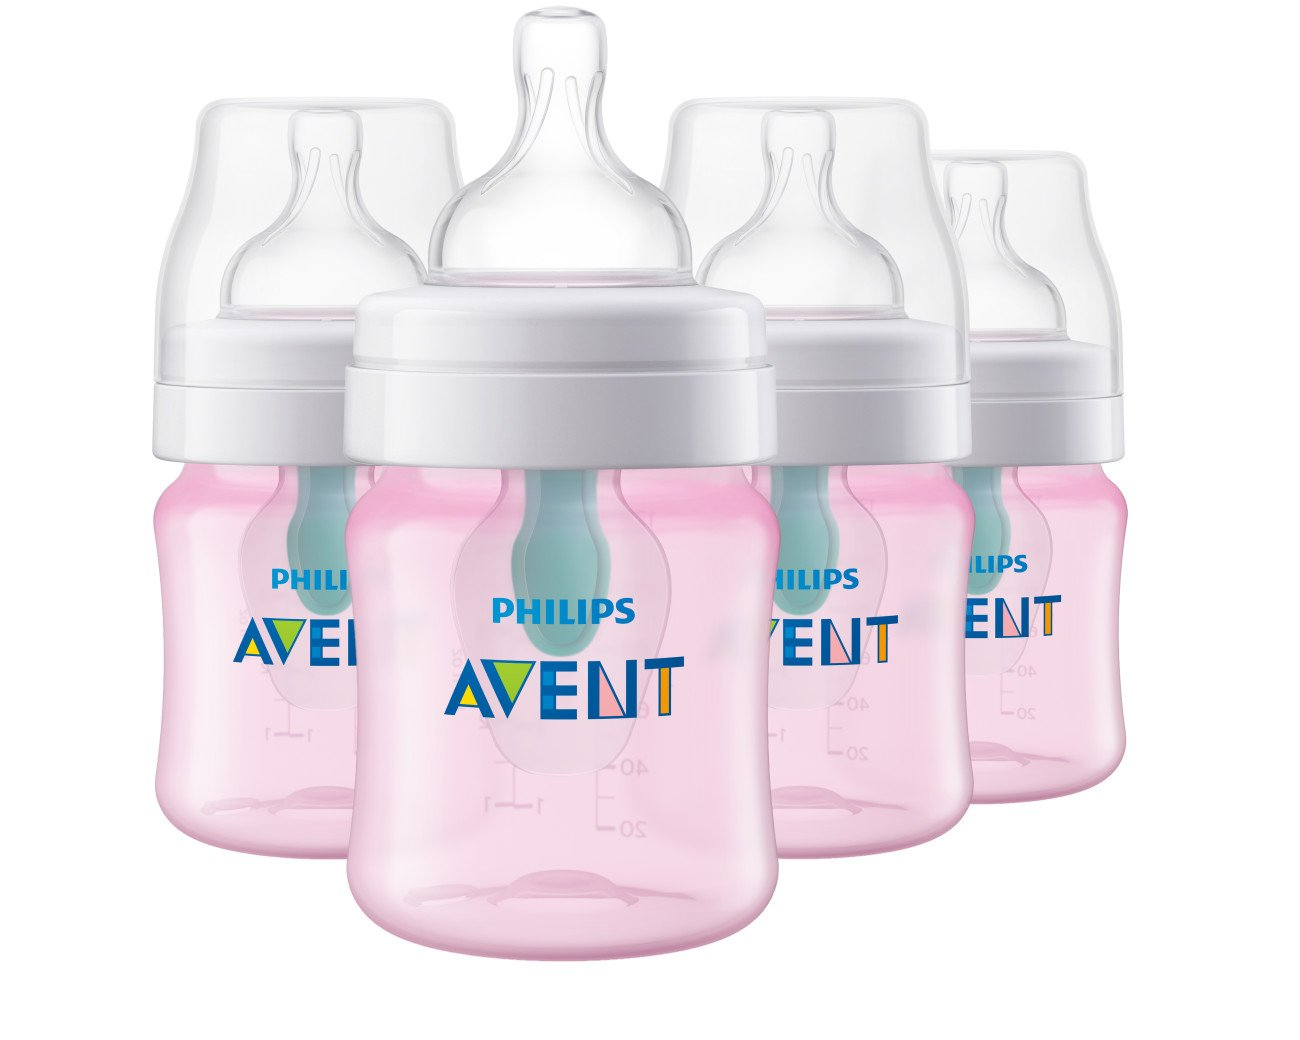 Philips Avent Anti-colic Baby Bottle with AirFree vent, Pink, SCF401/44, 4 Oz, 4 Count